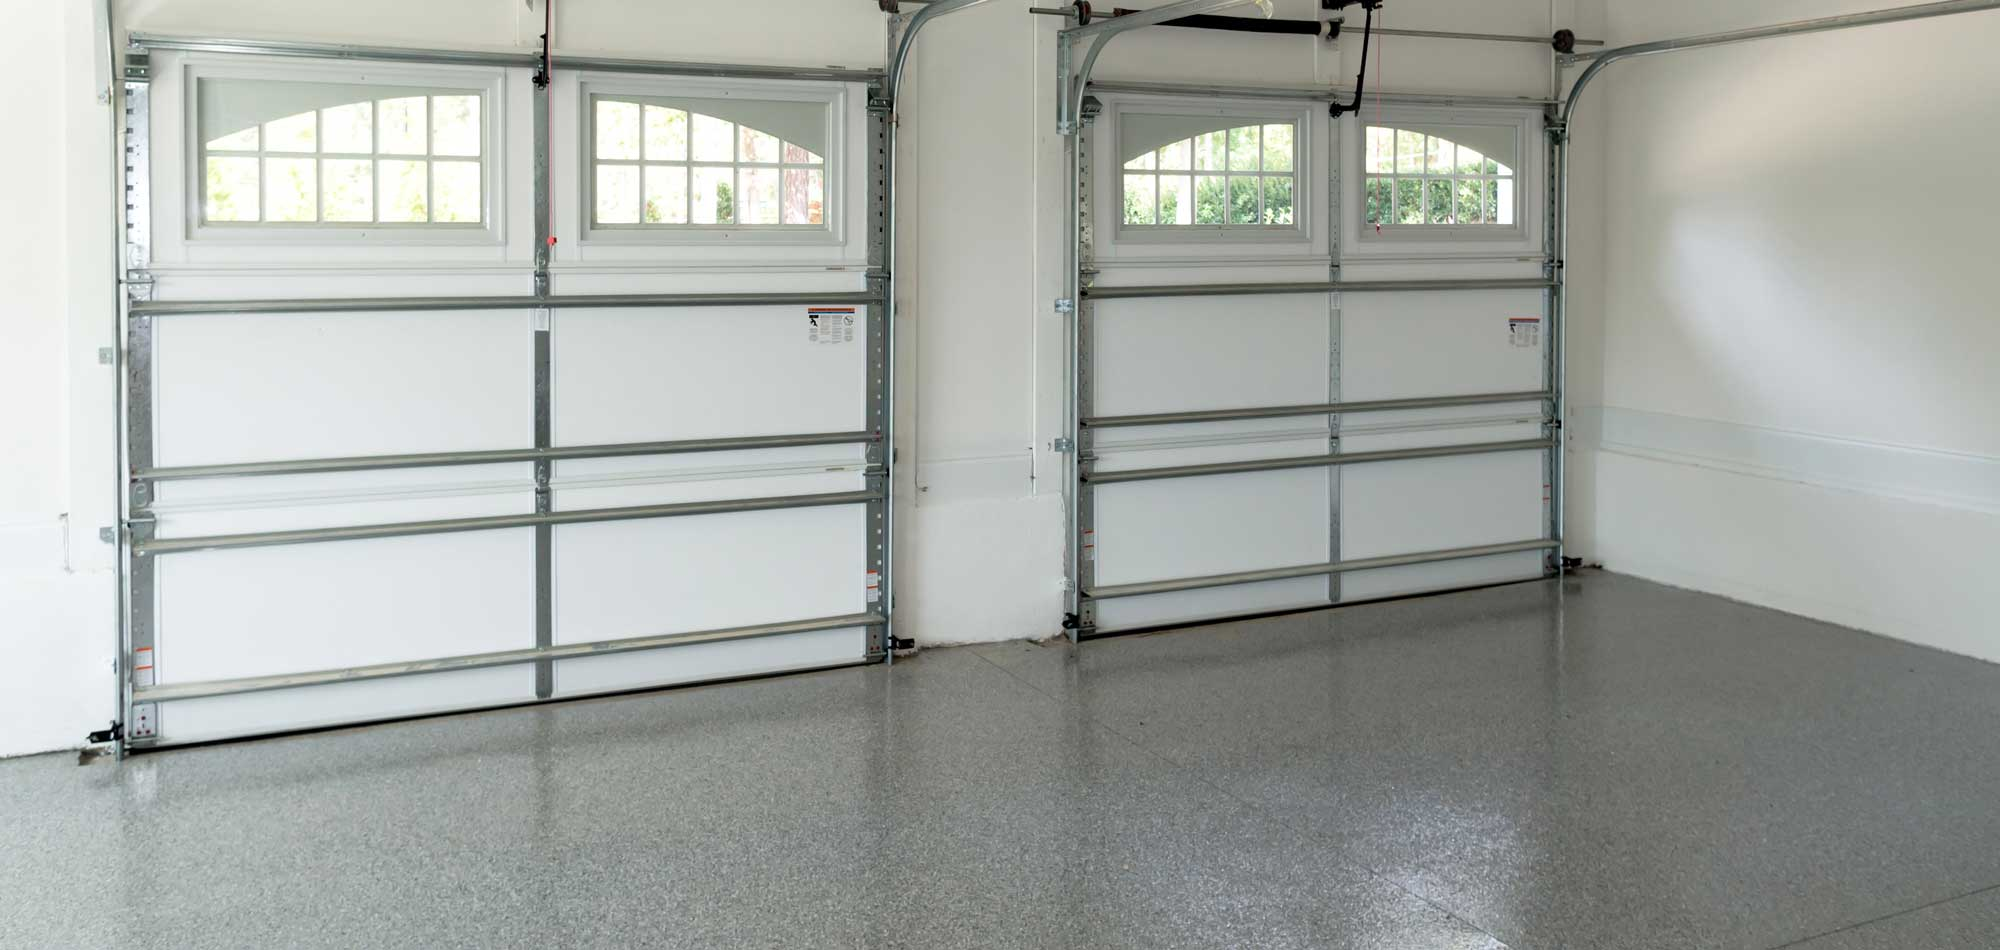 How Much Epoxy Garage Floor Cost How Much Does Garage Floor Epoxy Cost In 2019 Inch Calculator